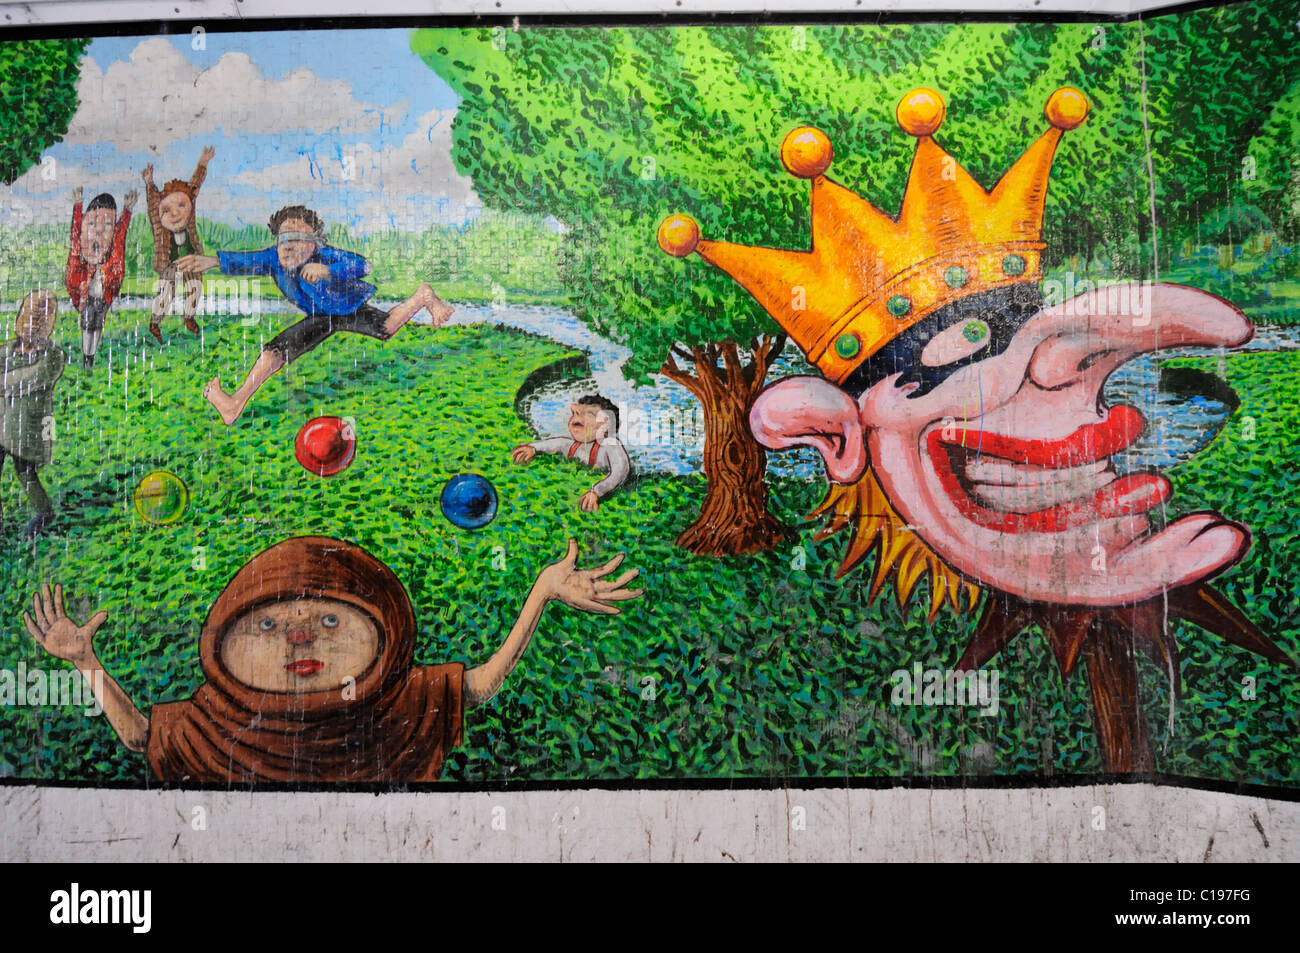 Street Art depicting the large trade fair held on Stourbridge  Common in Medieval Times, Cambridge, England, UK - Stock Image